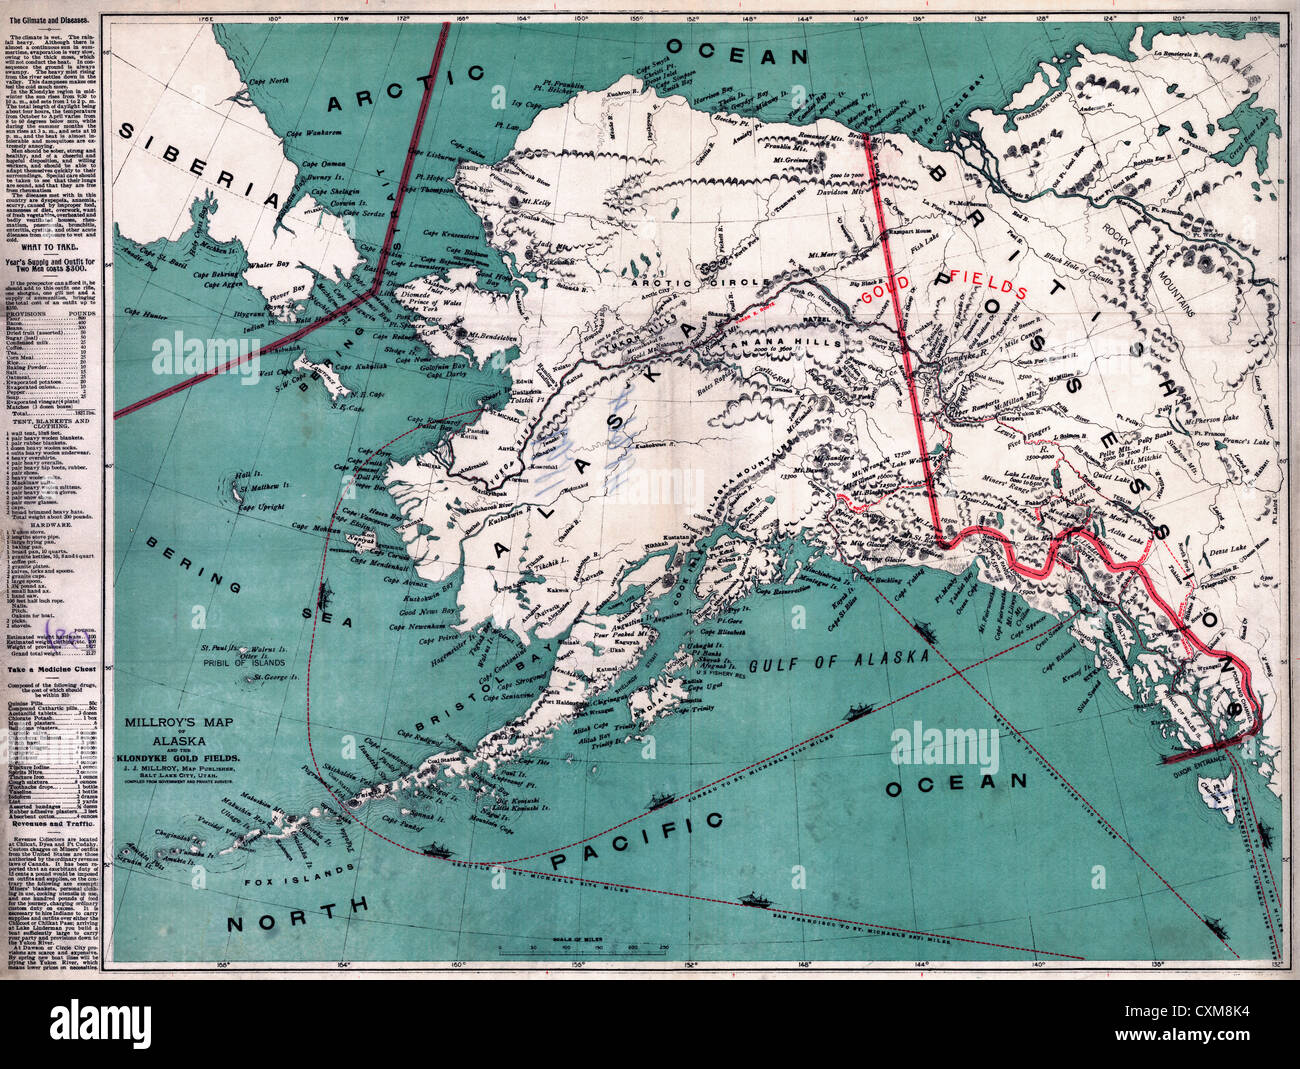 Alaska Karte Stadte.Alaska Map Stockfotos Alaska Map Bilder Alamy